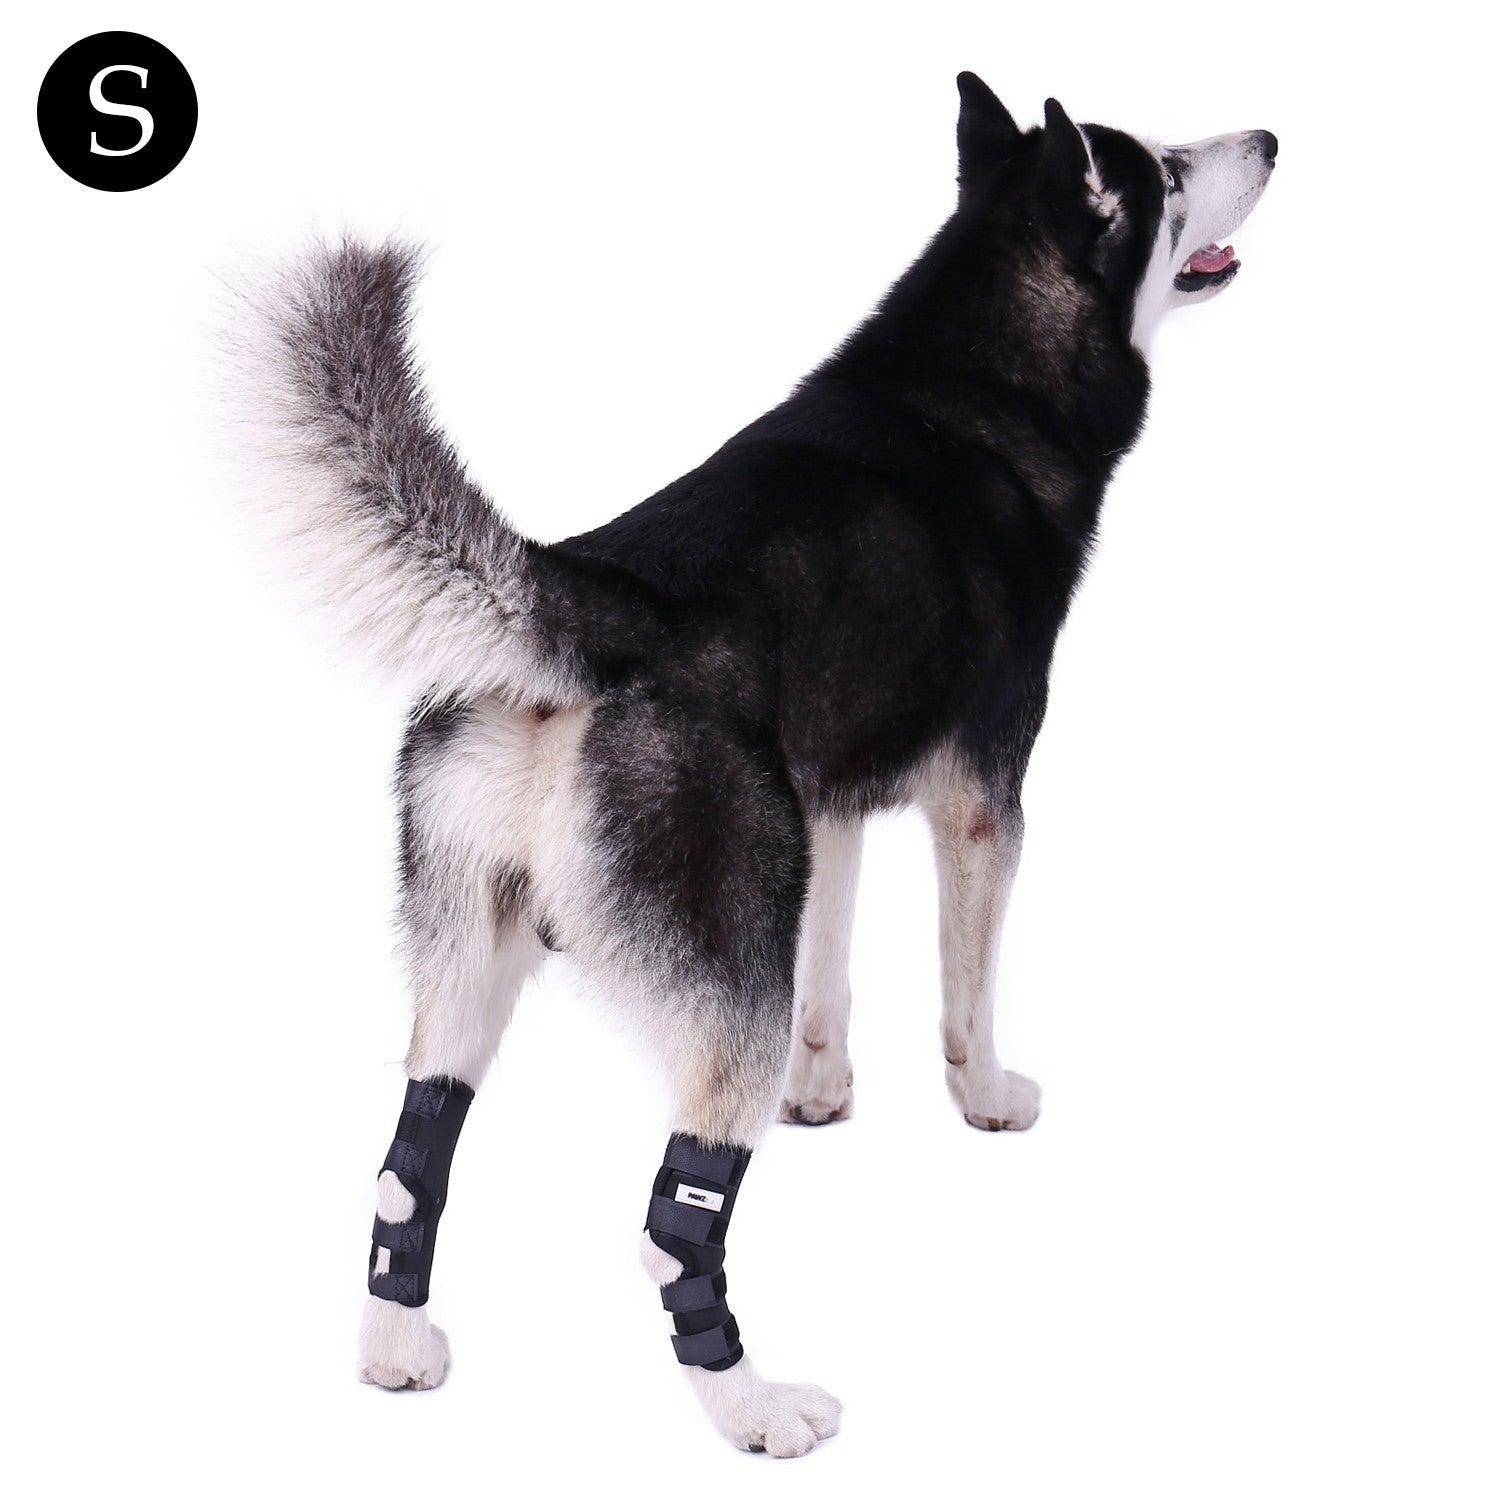 2 PCS Pet Knee Pads Dog Back Leg Brace Pet Protector Dog Canine Hint Leg Brace Wraps Injury Fixed Knee Pads Dog Feet Cover